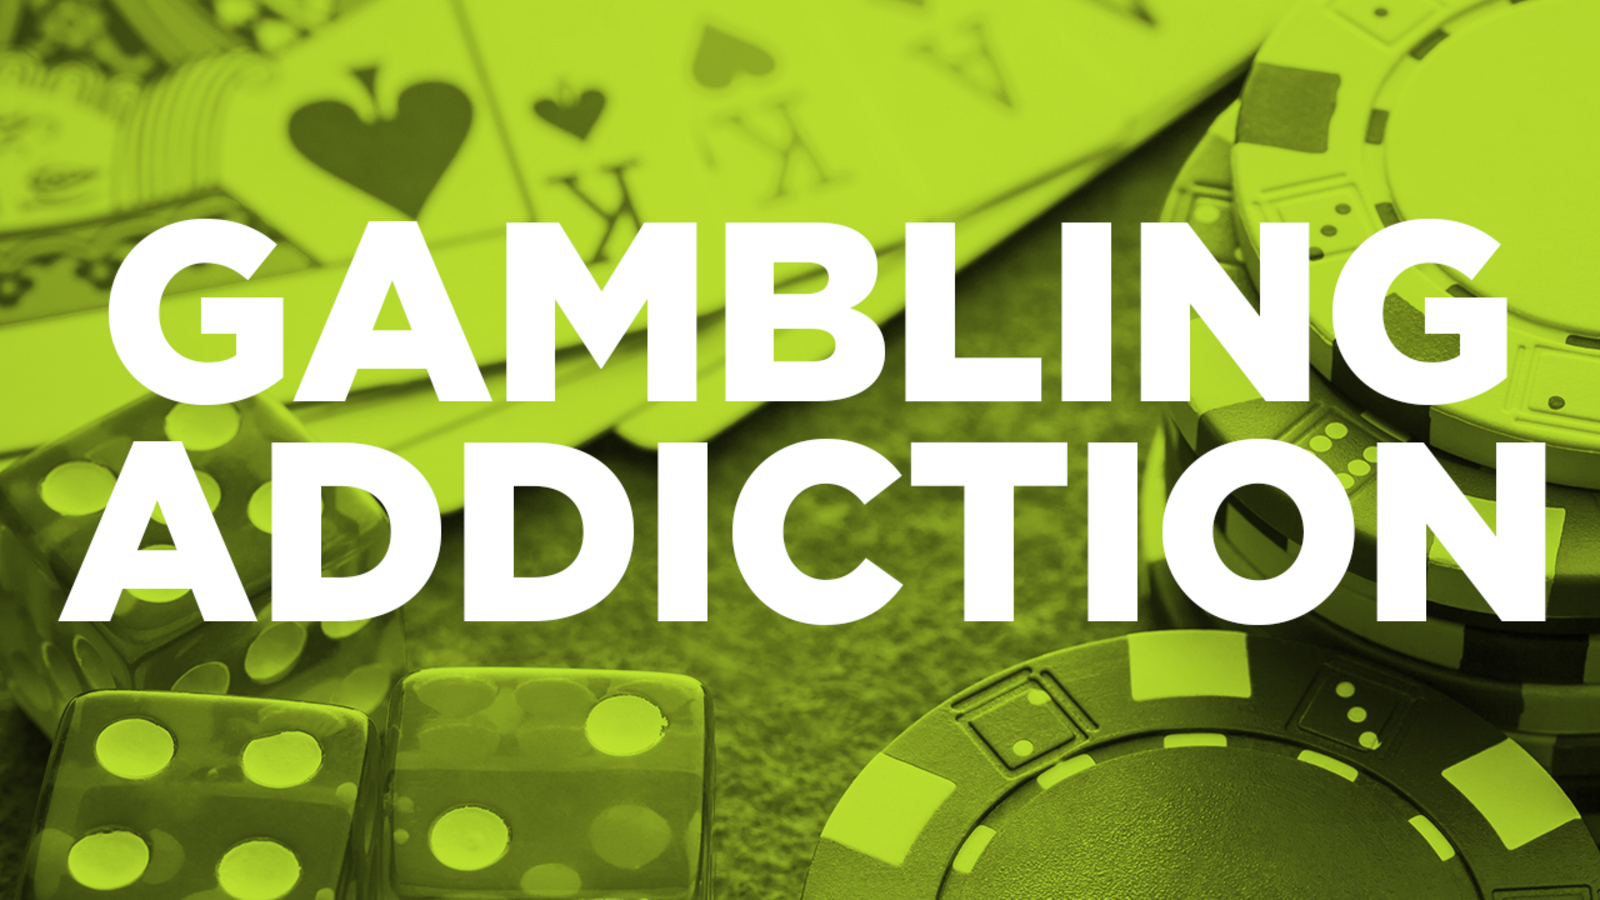 Get help with gambling addiction